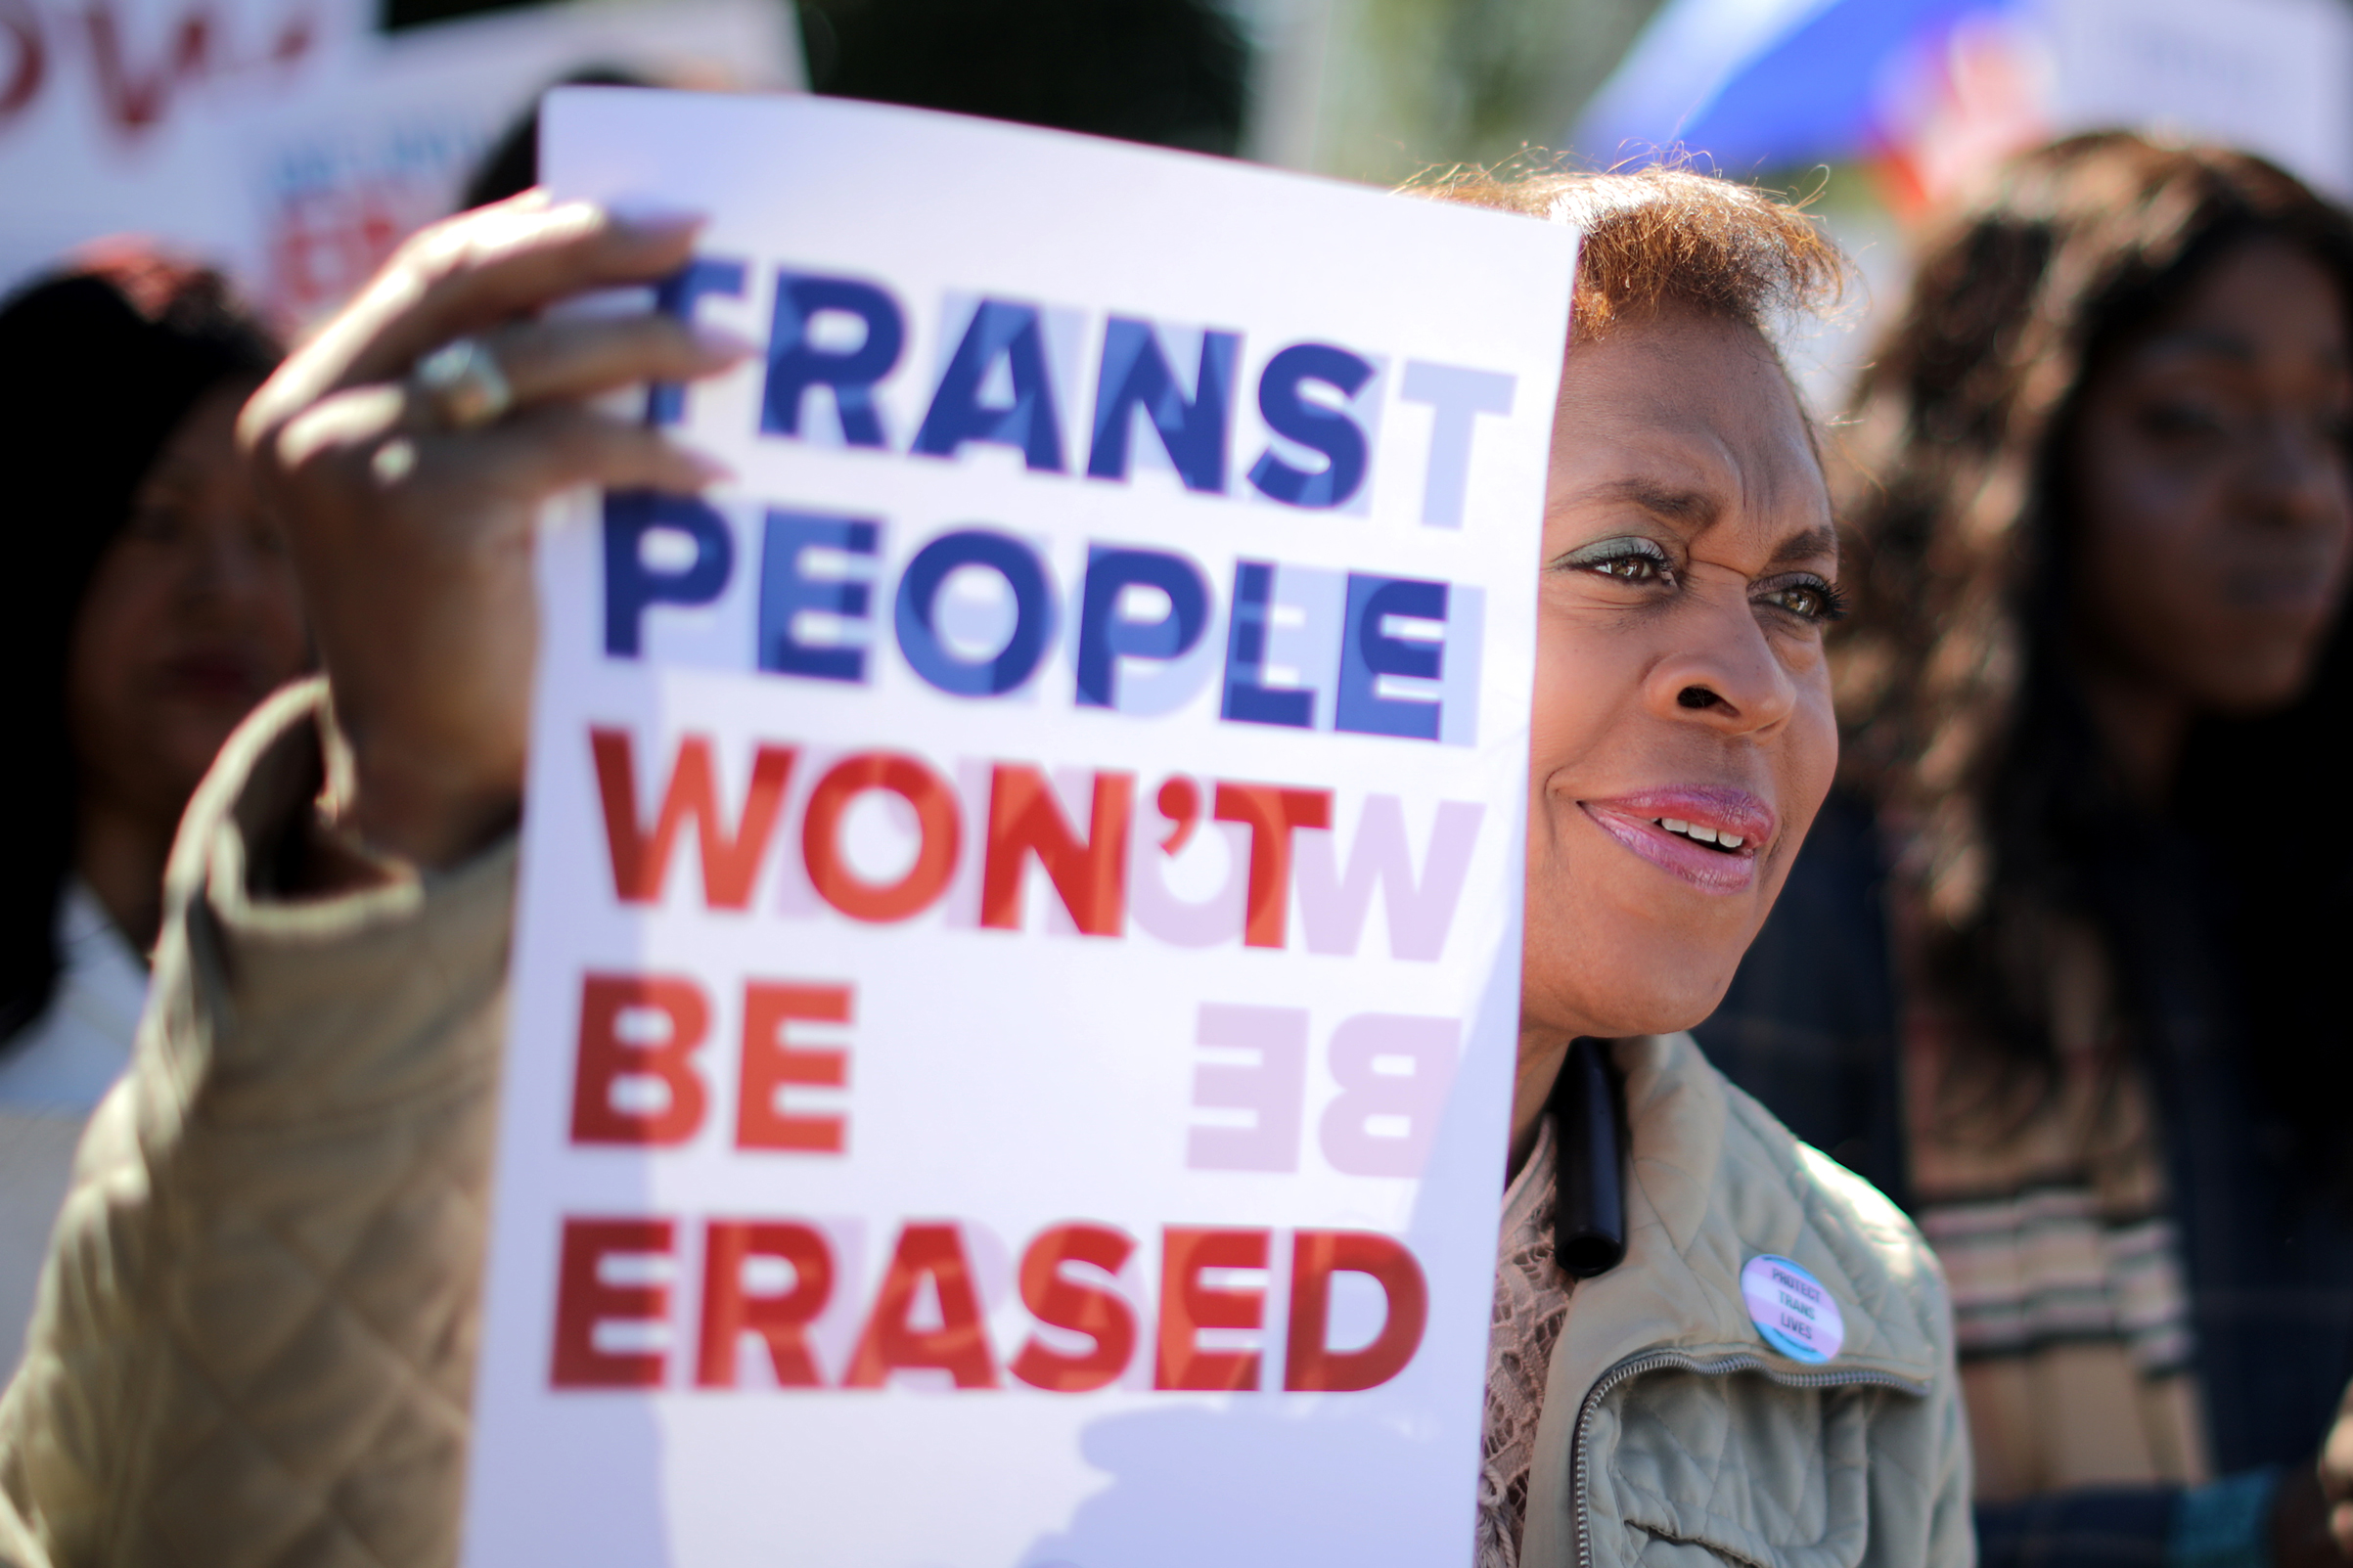 Activists from the National Center for Transgender Equality, partner organizations and their supporters rally in front of the White House Oct. 22, 2018 in Washington, D.C.